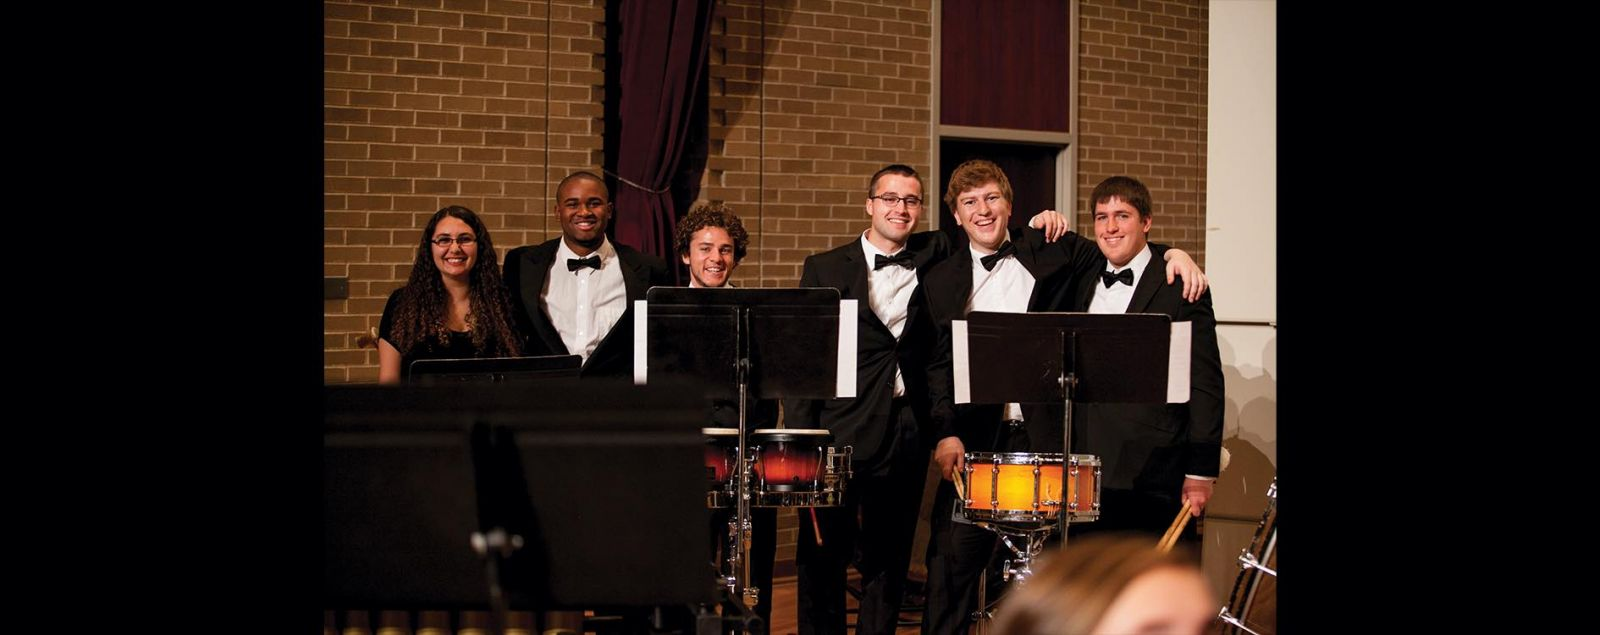 Percussionists smiling